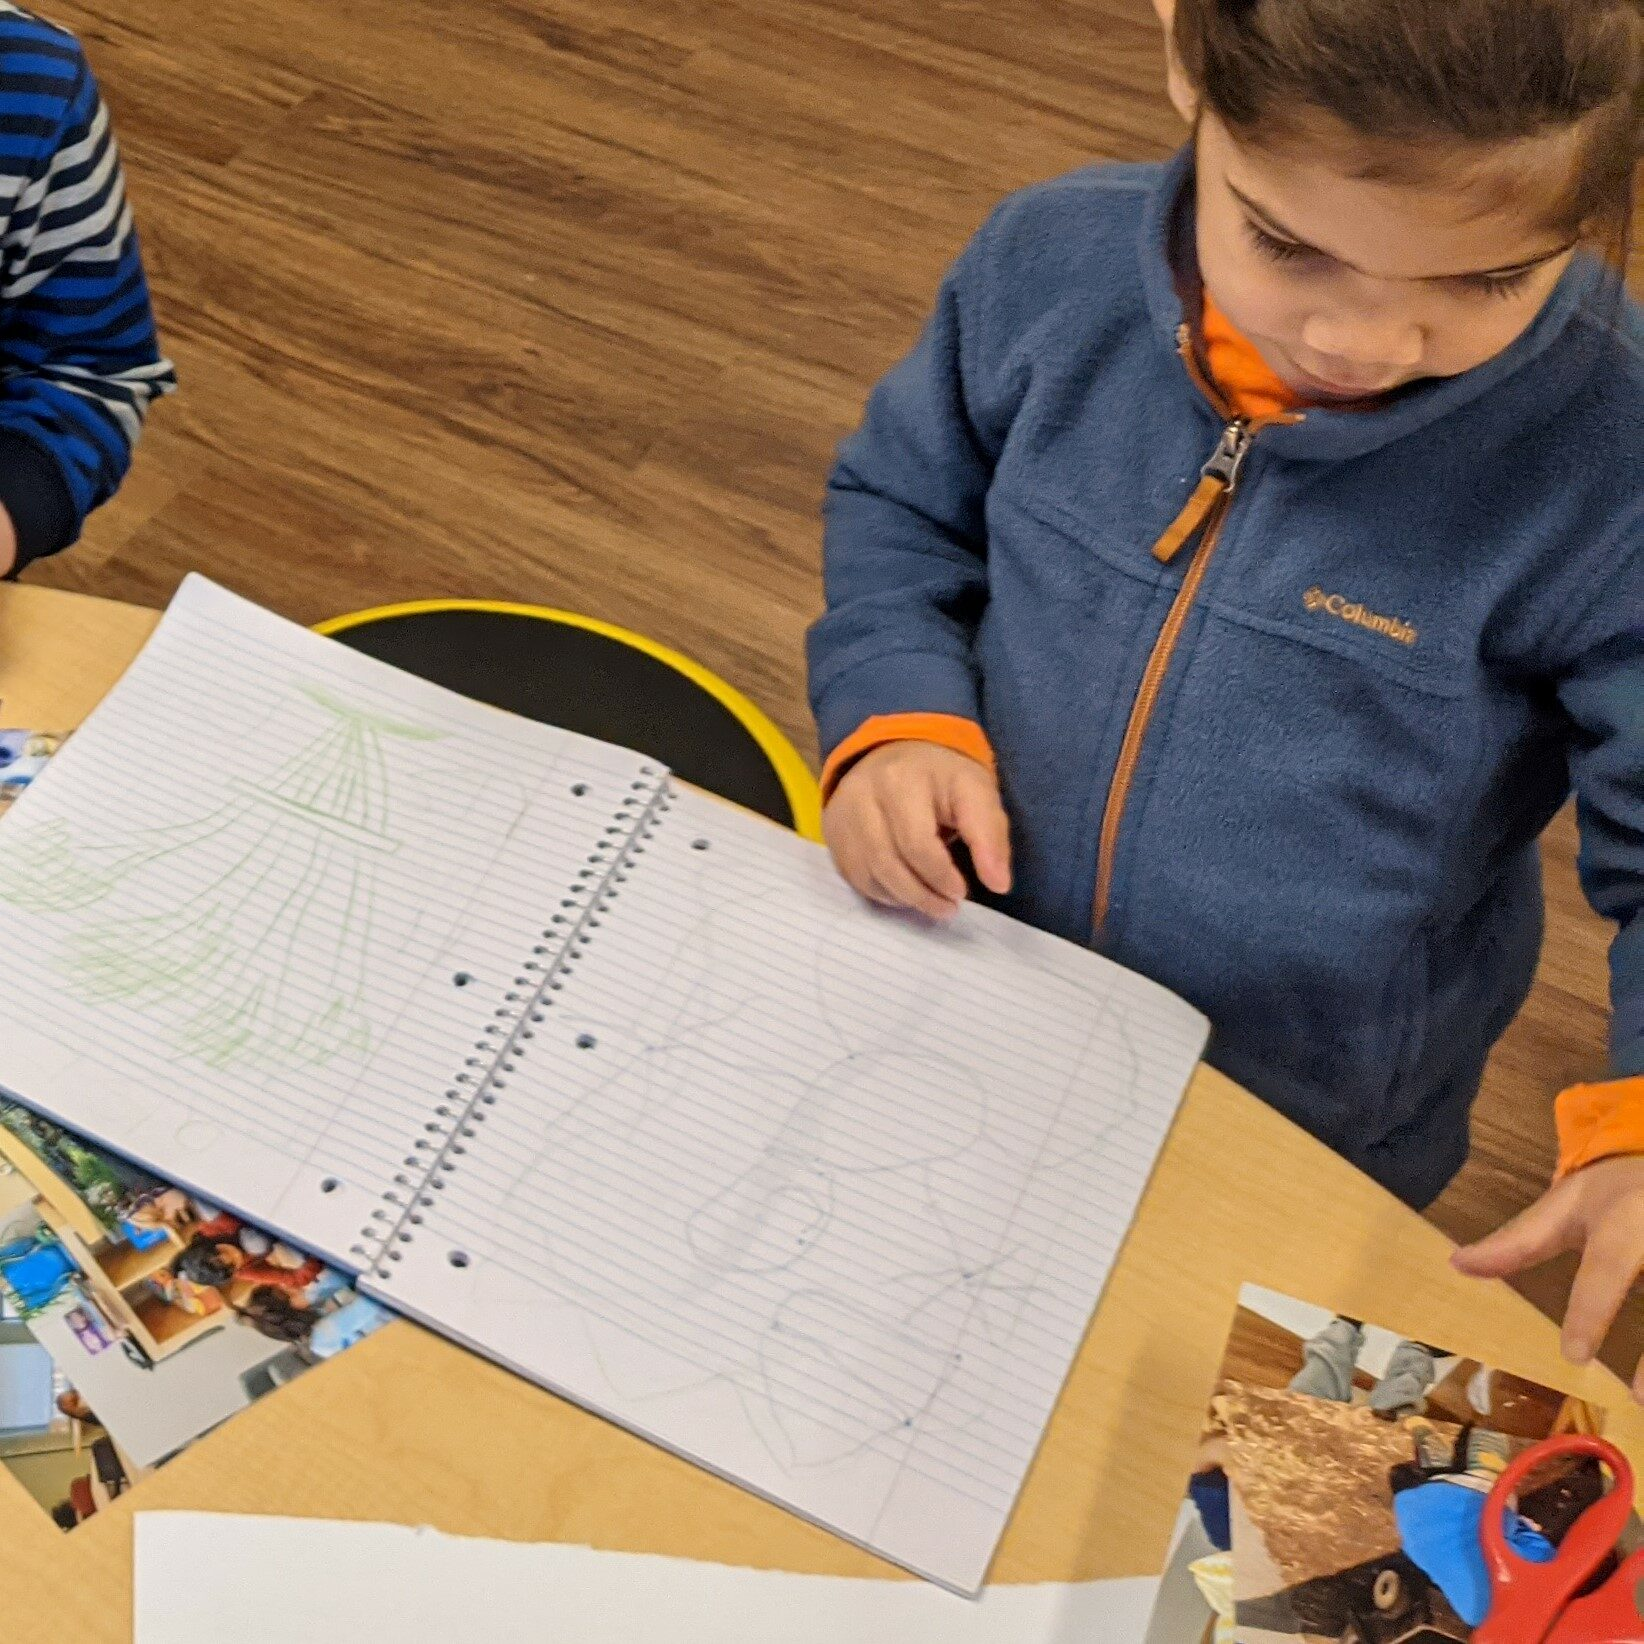 Toddler looking at images, pictures and thinking, play based learning